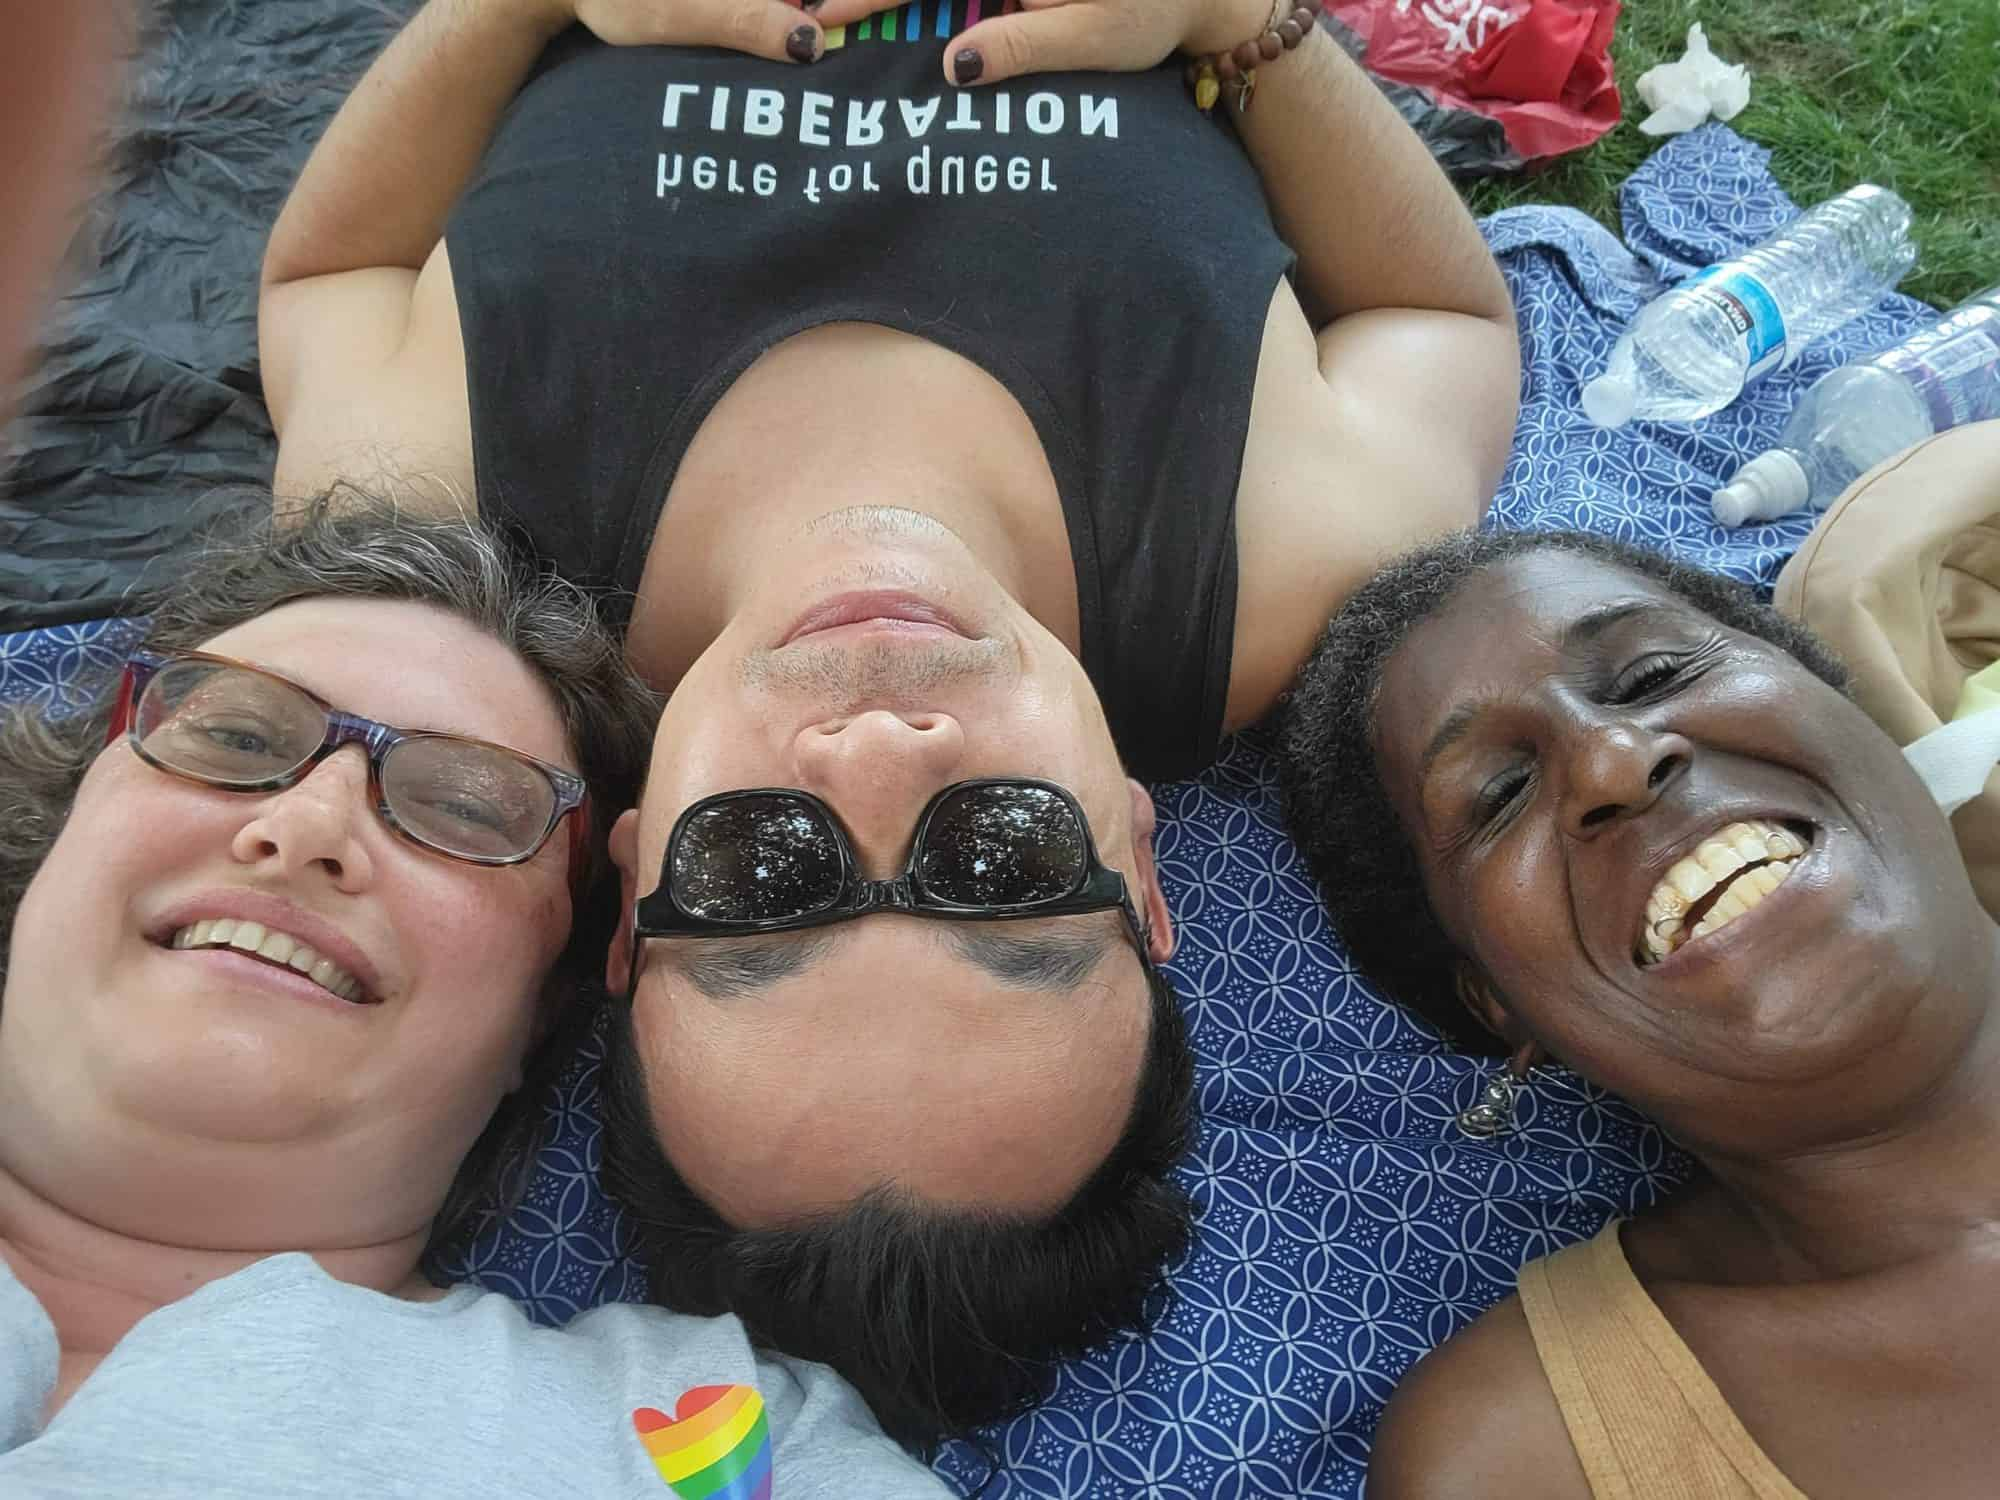 three smiling bi people. Alison is on the left(white woman with brown hair and tinted lenses), Godwin upside down in the middle(Asian man with black hair and sunglassess), and Nee on the right(Black woman with her hair natural and up). All three are smiling into the camera. They are lying on their backs, with only their faces visible.